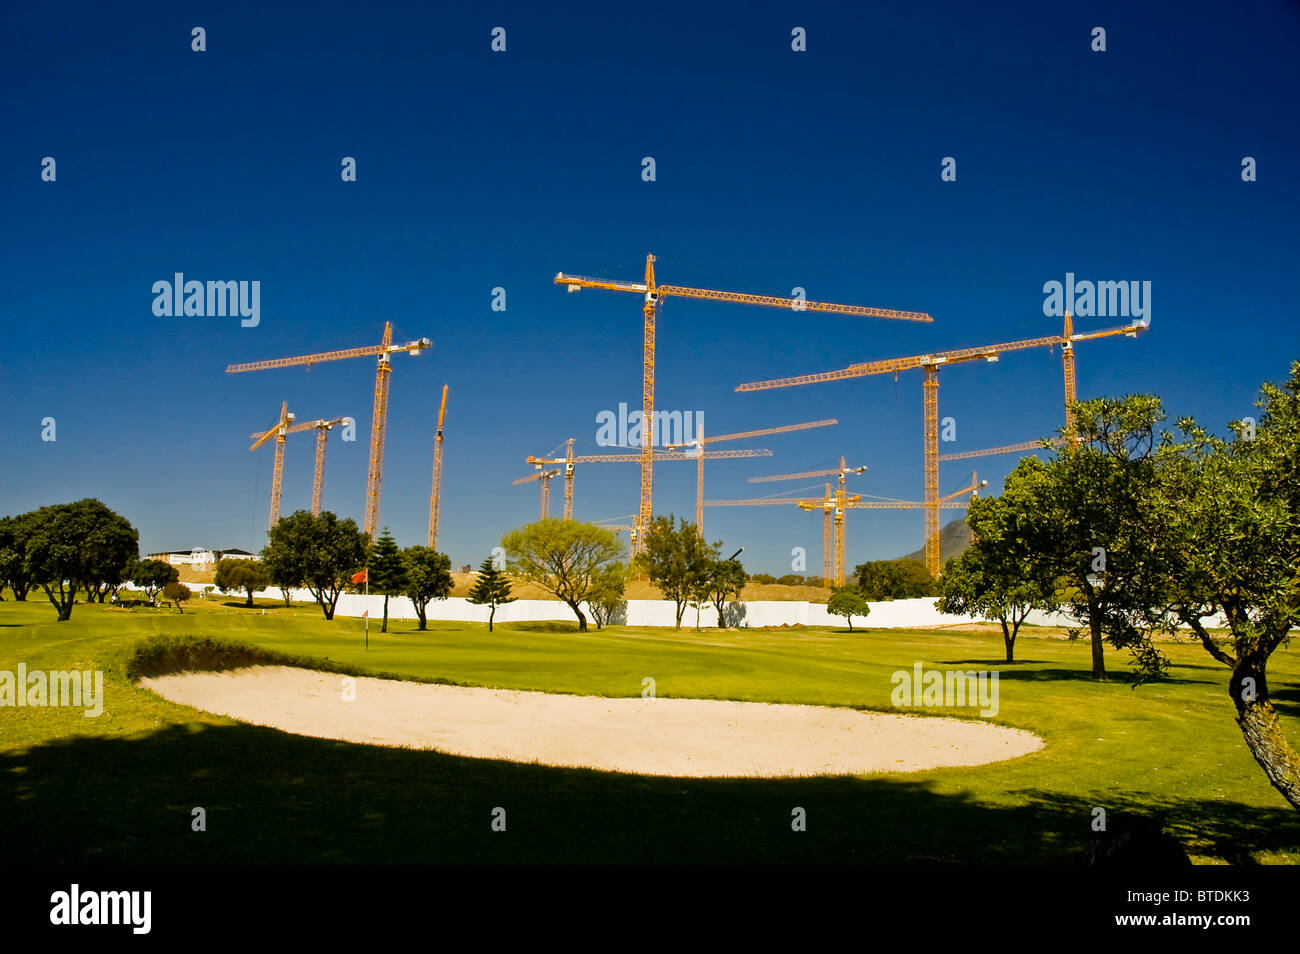 Cranes at the current site of the Greenpoint stadium at the beginning of construction - Stock Image